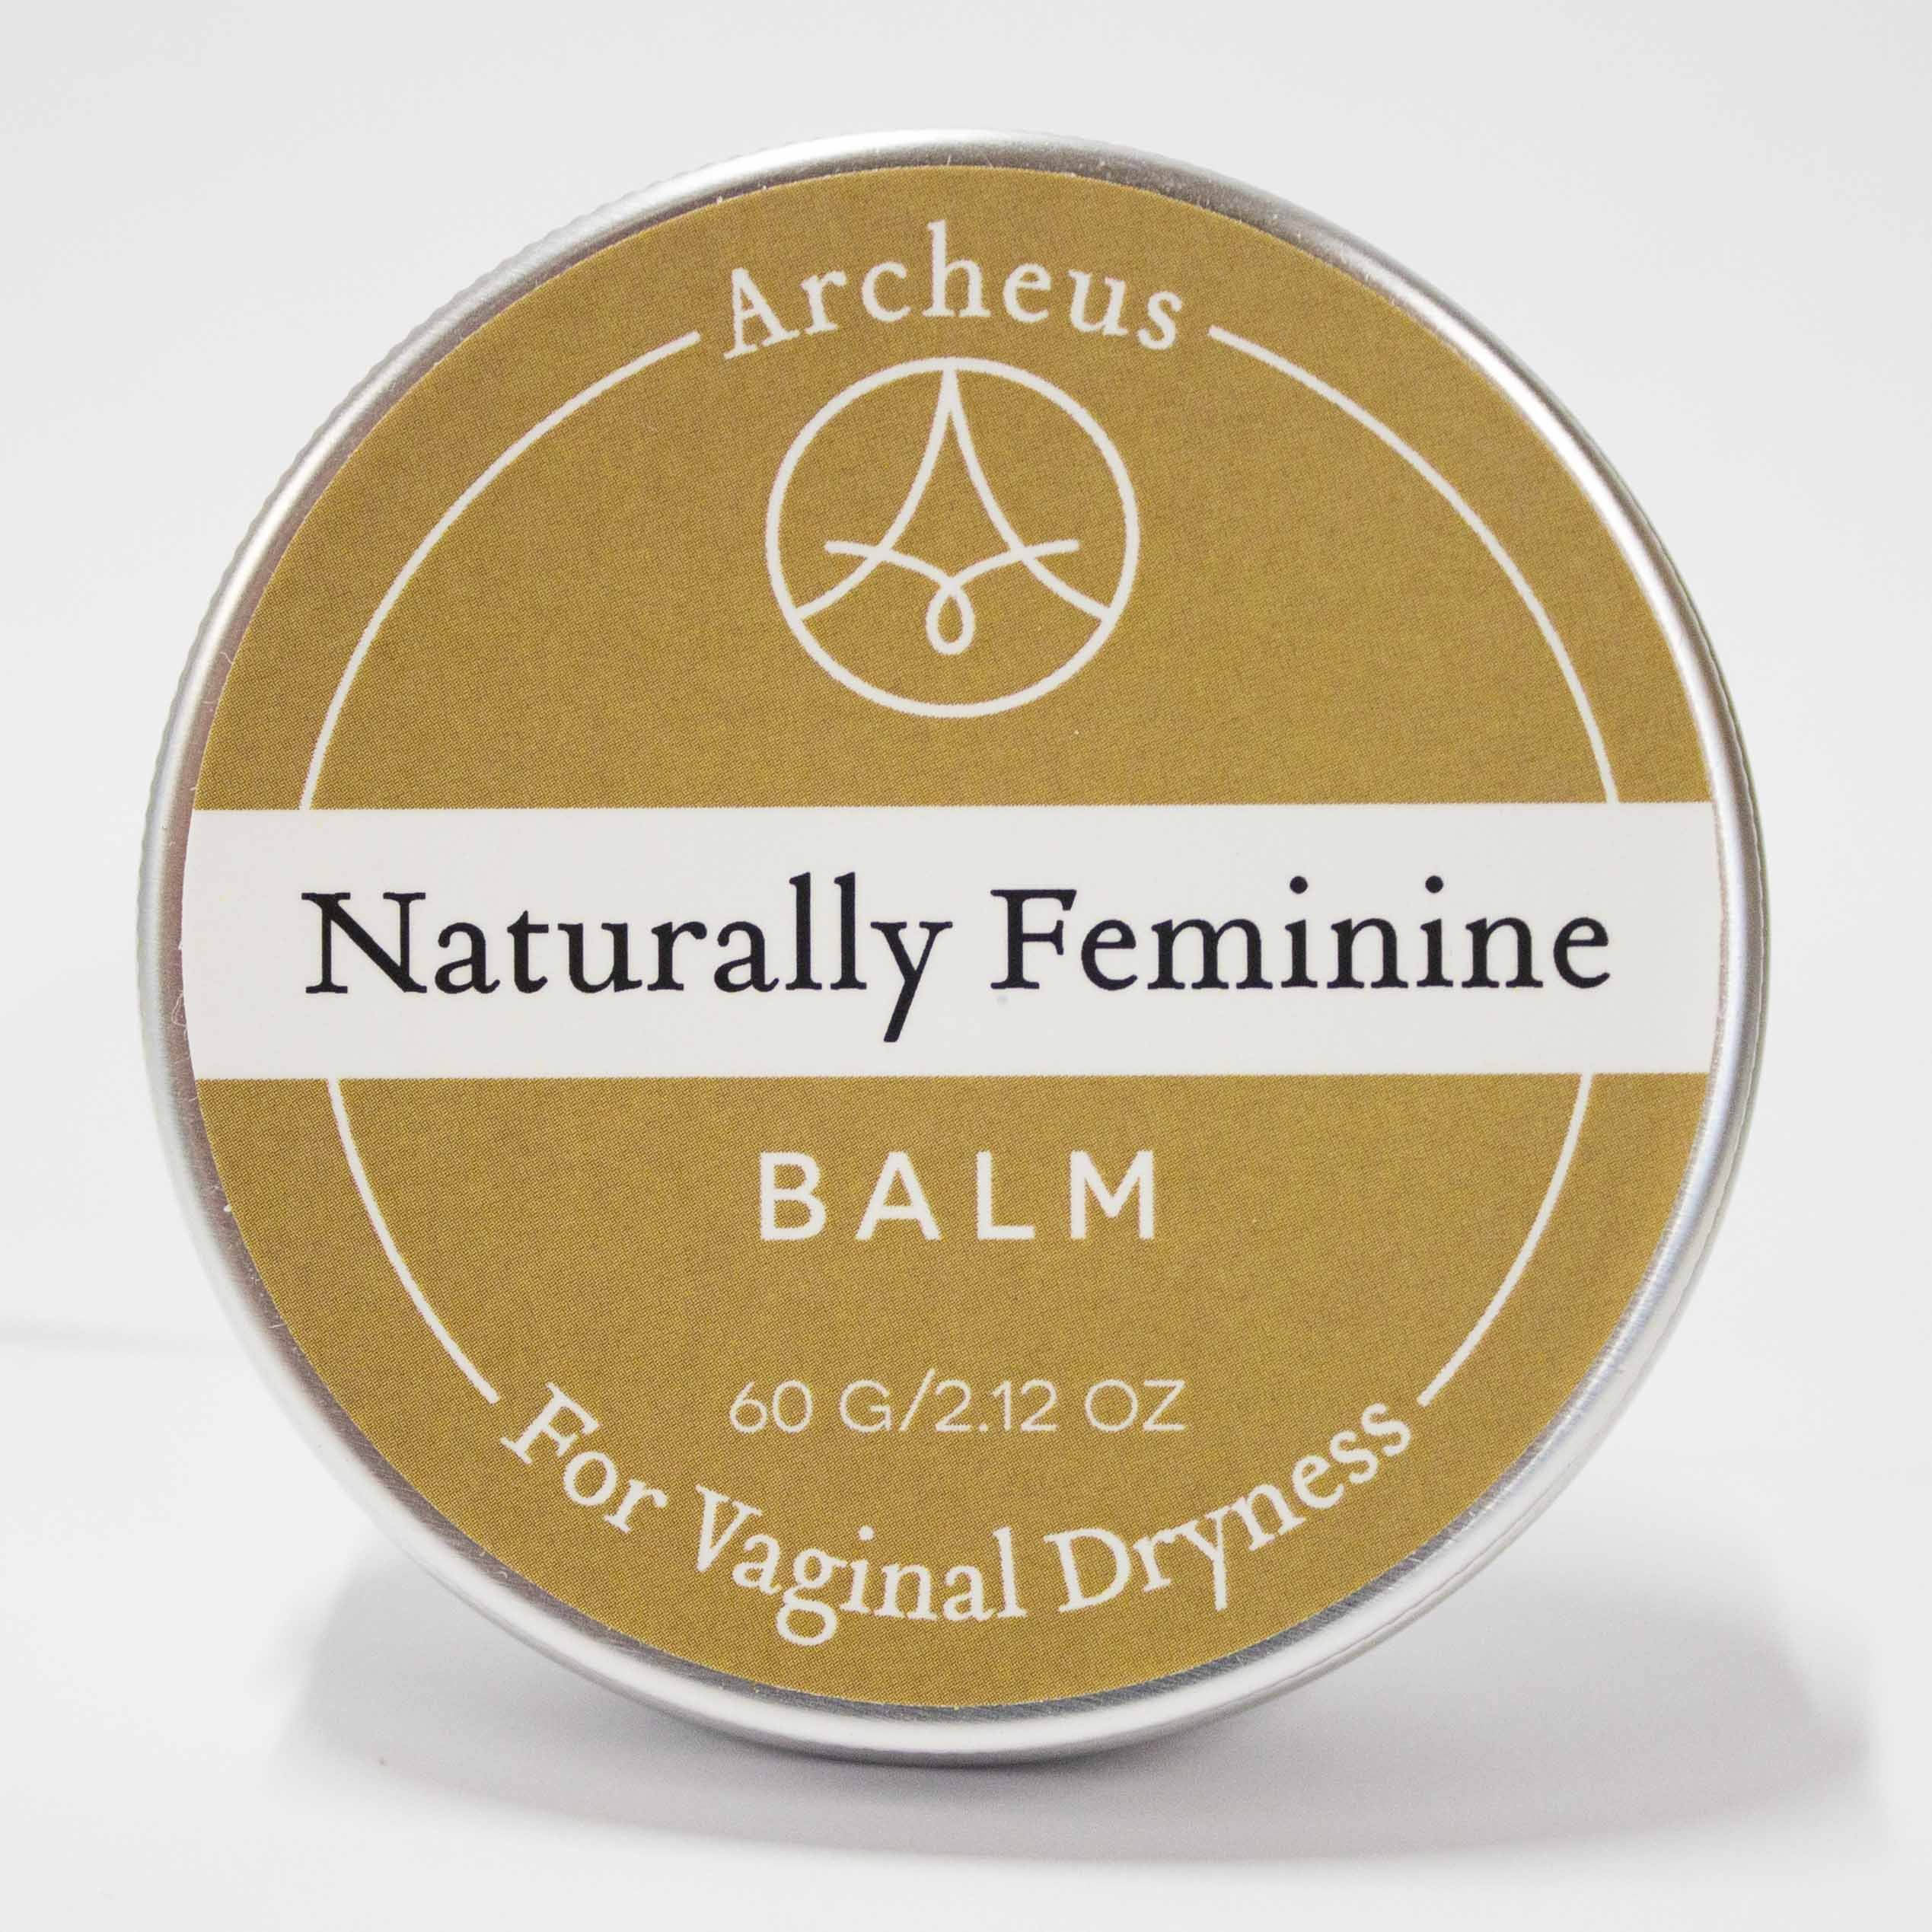 Naturally Feminine Balm - Natural & Organic Balm for Relief from Vaginal Dryness Suitable for use During Menopause for Intimacy and Post-partum by Archeus